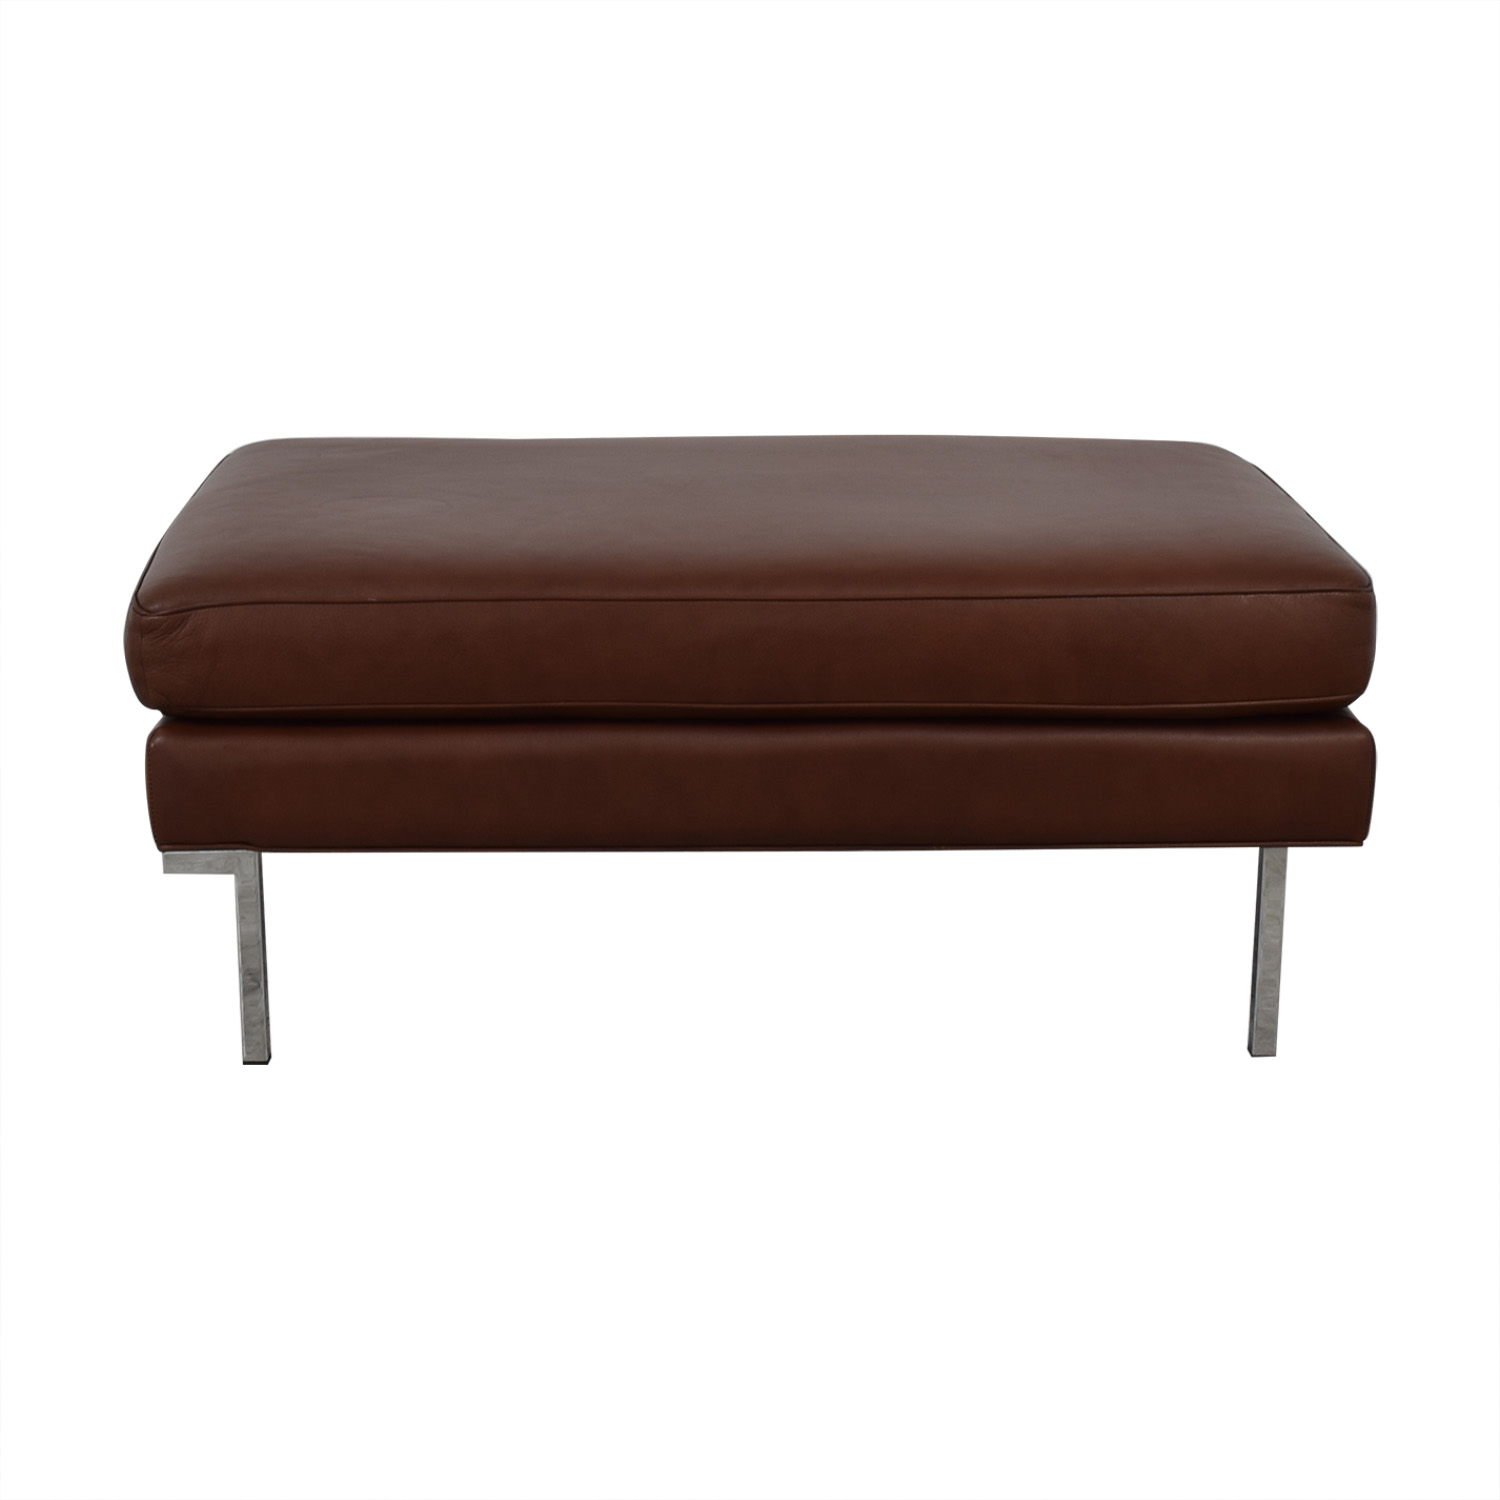 shop Design Within Reach Design Within Reach Theatre Ottoman Leather Ottoman online